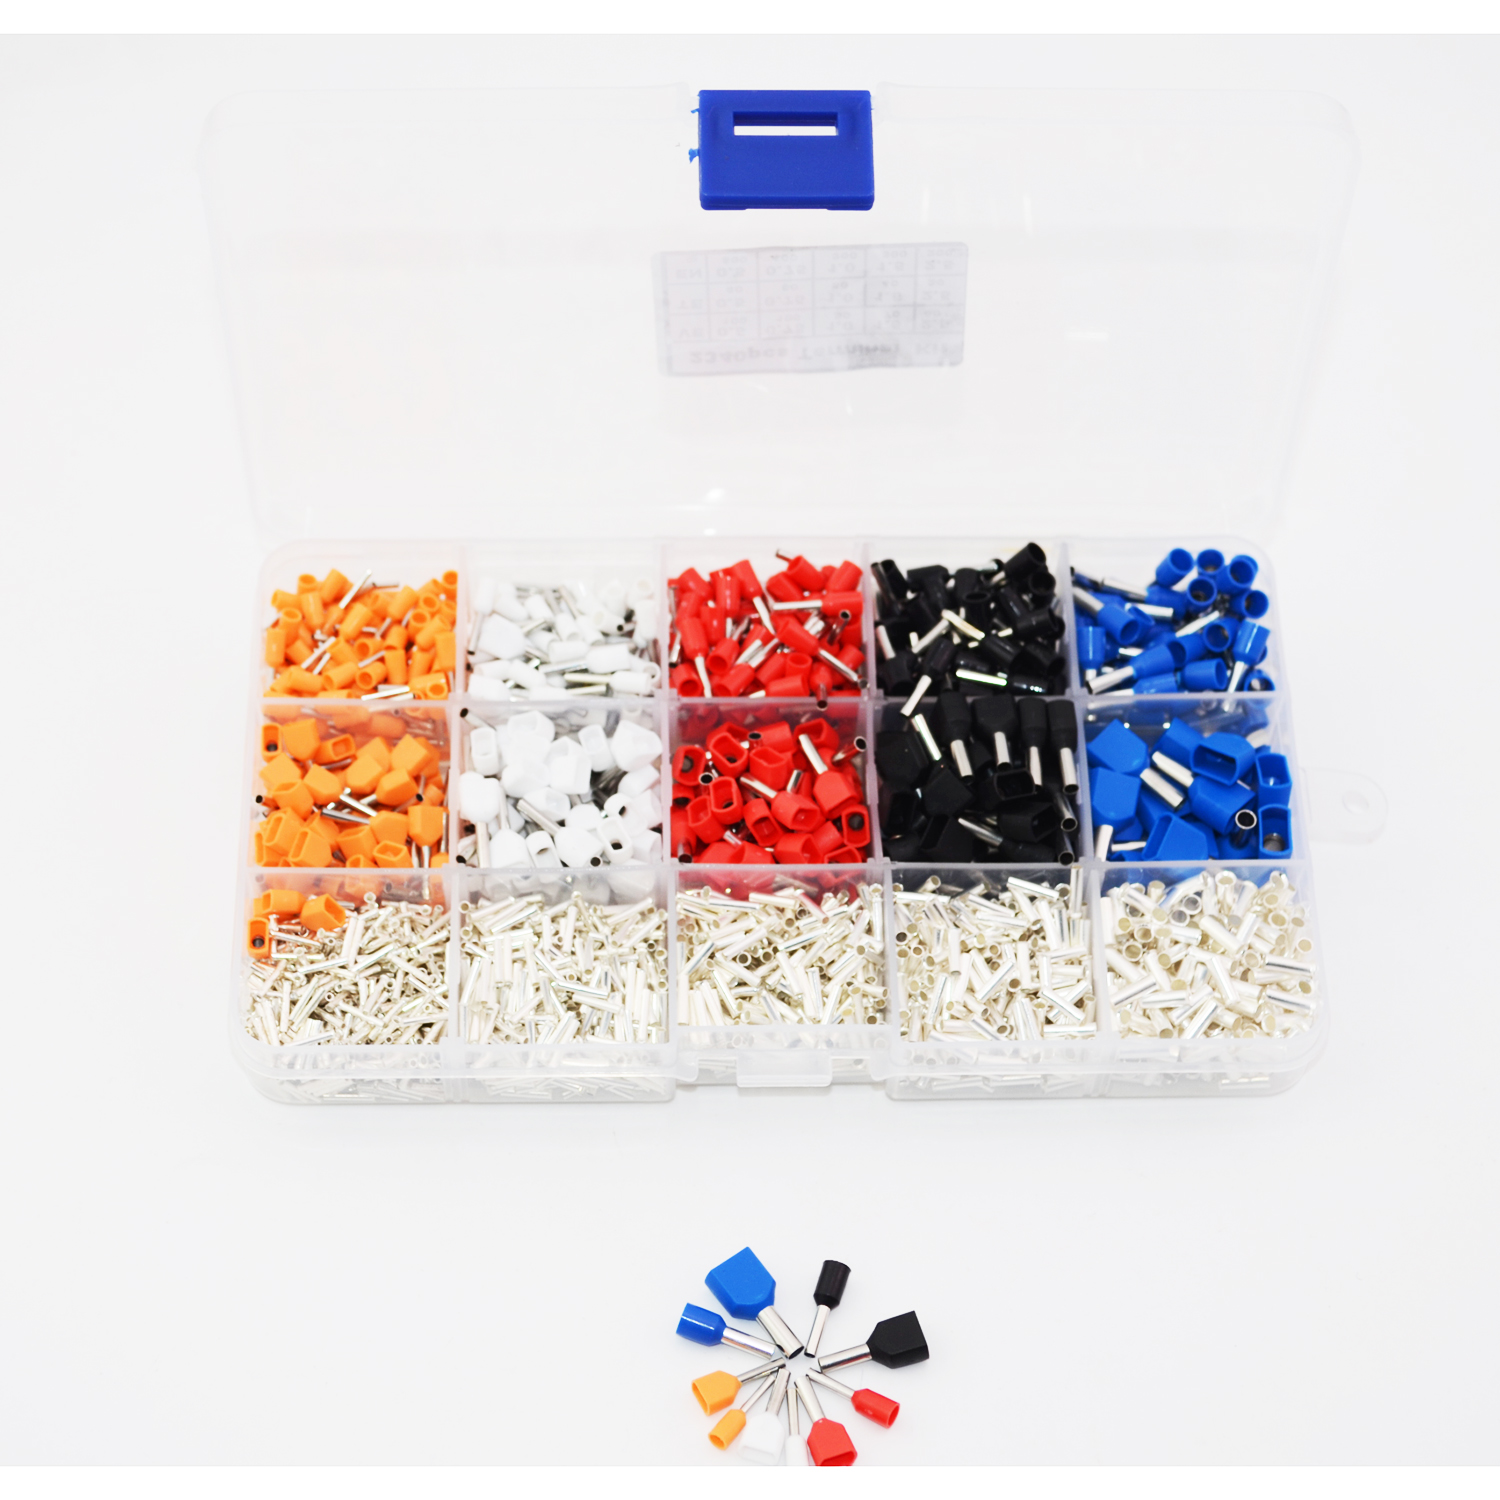 5 color 15 value 2340pcs/lot Bootlace Ferrules kit set Wire Crimp Connector Insulated Cord Pin End Terminal wholesal e1008 insulated cable cord end bootlace ferrule terminals tubular wire connector for 1 0mm2 wire 1000pcs